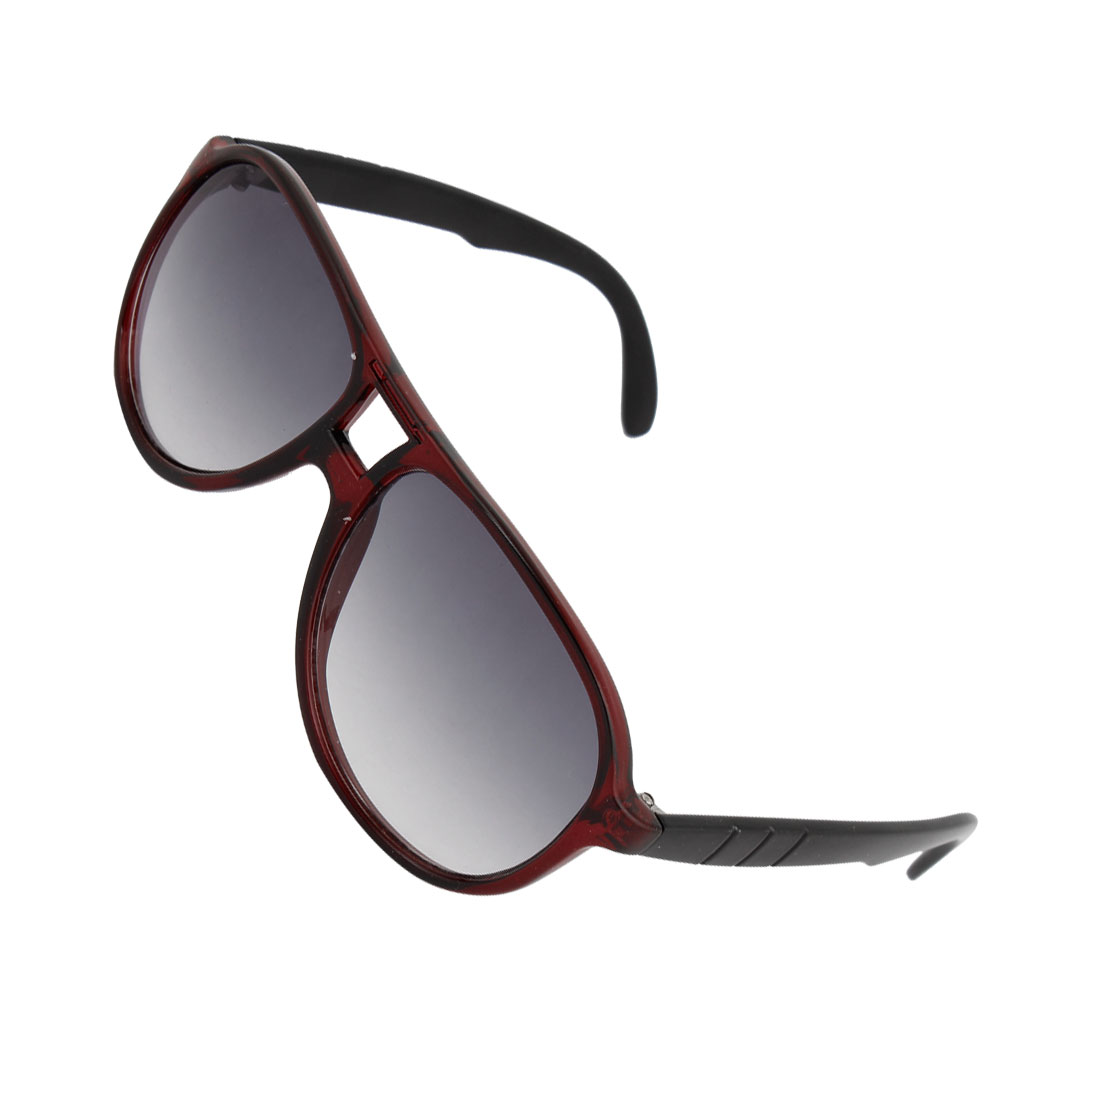 Unisex Raindrop Shape Tinted Lens Double Bridge Glasses Sunglasses Burgundy